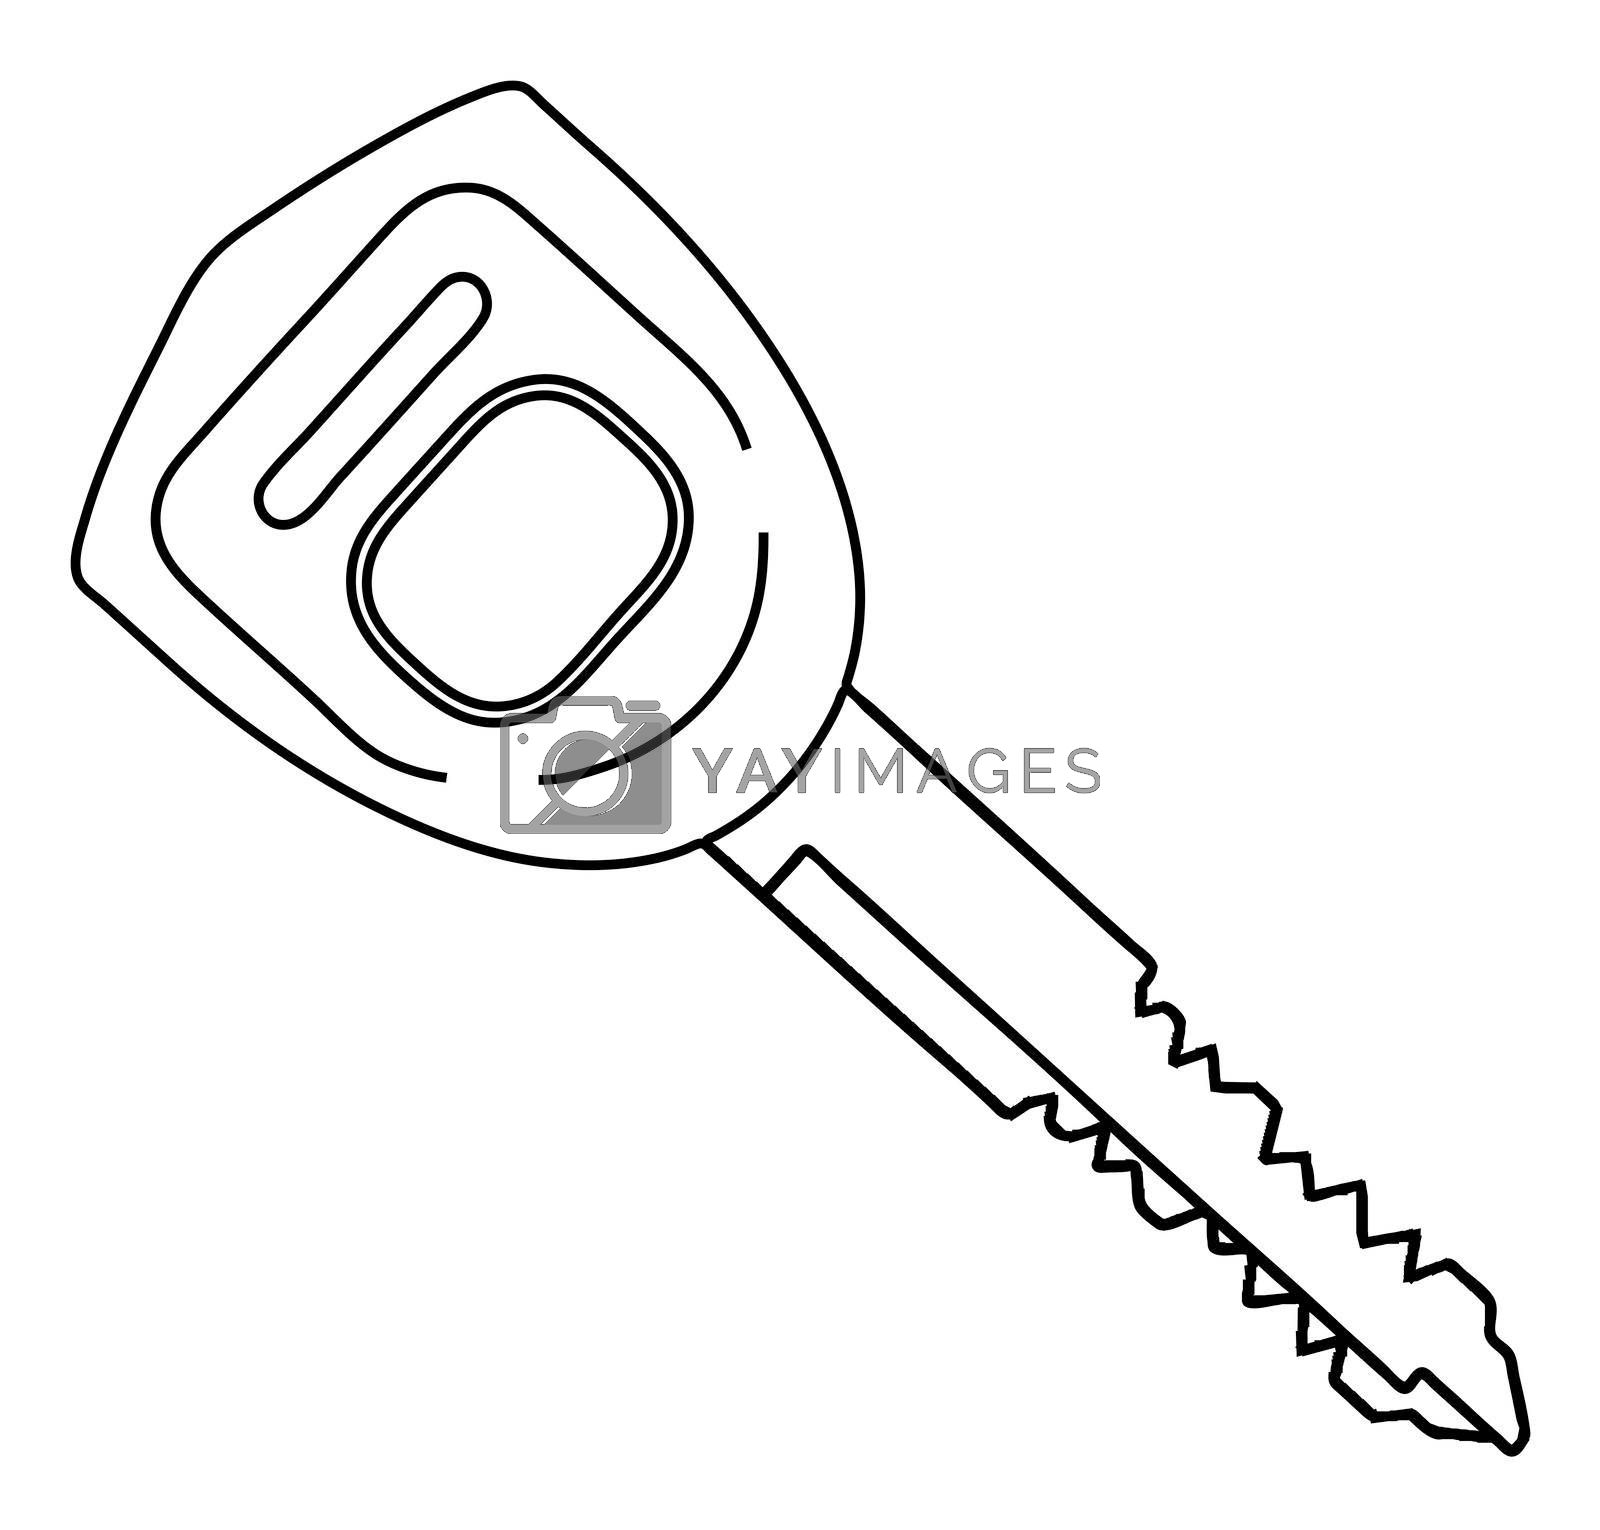 Royalty free image of Car Ignition Key Outline by Bigalbaloo